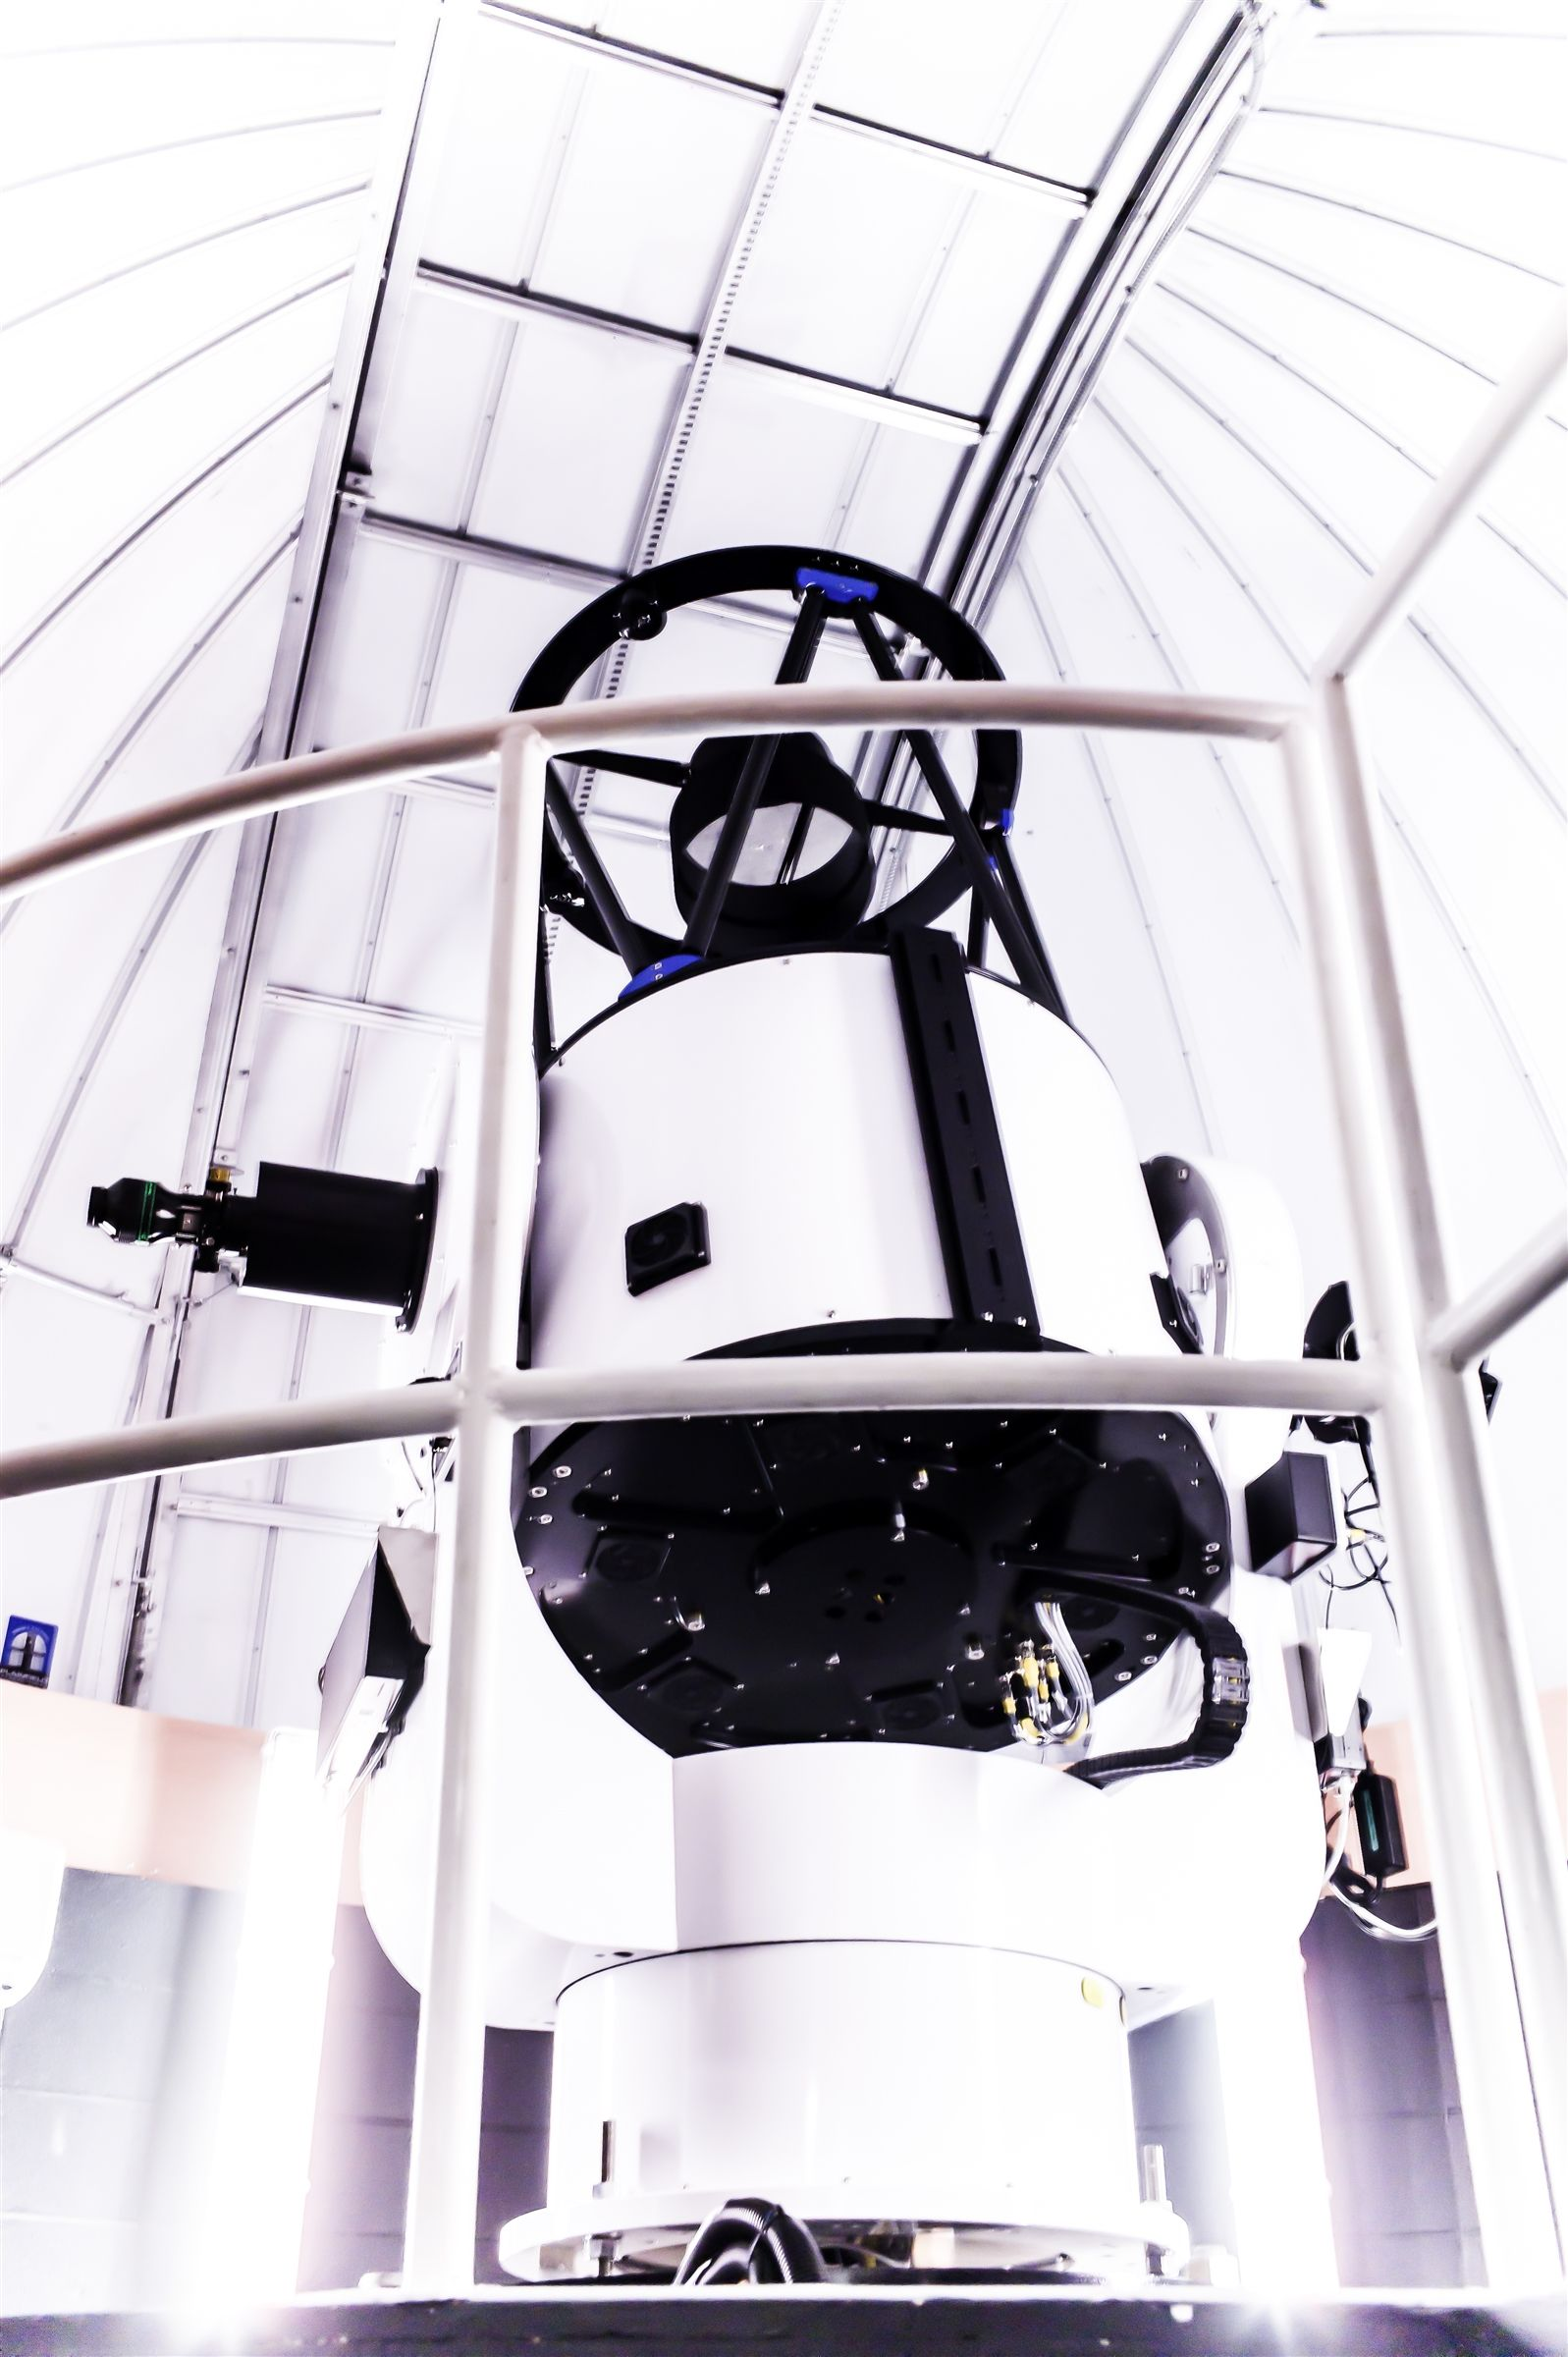 The telescope itself.